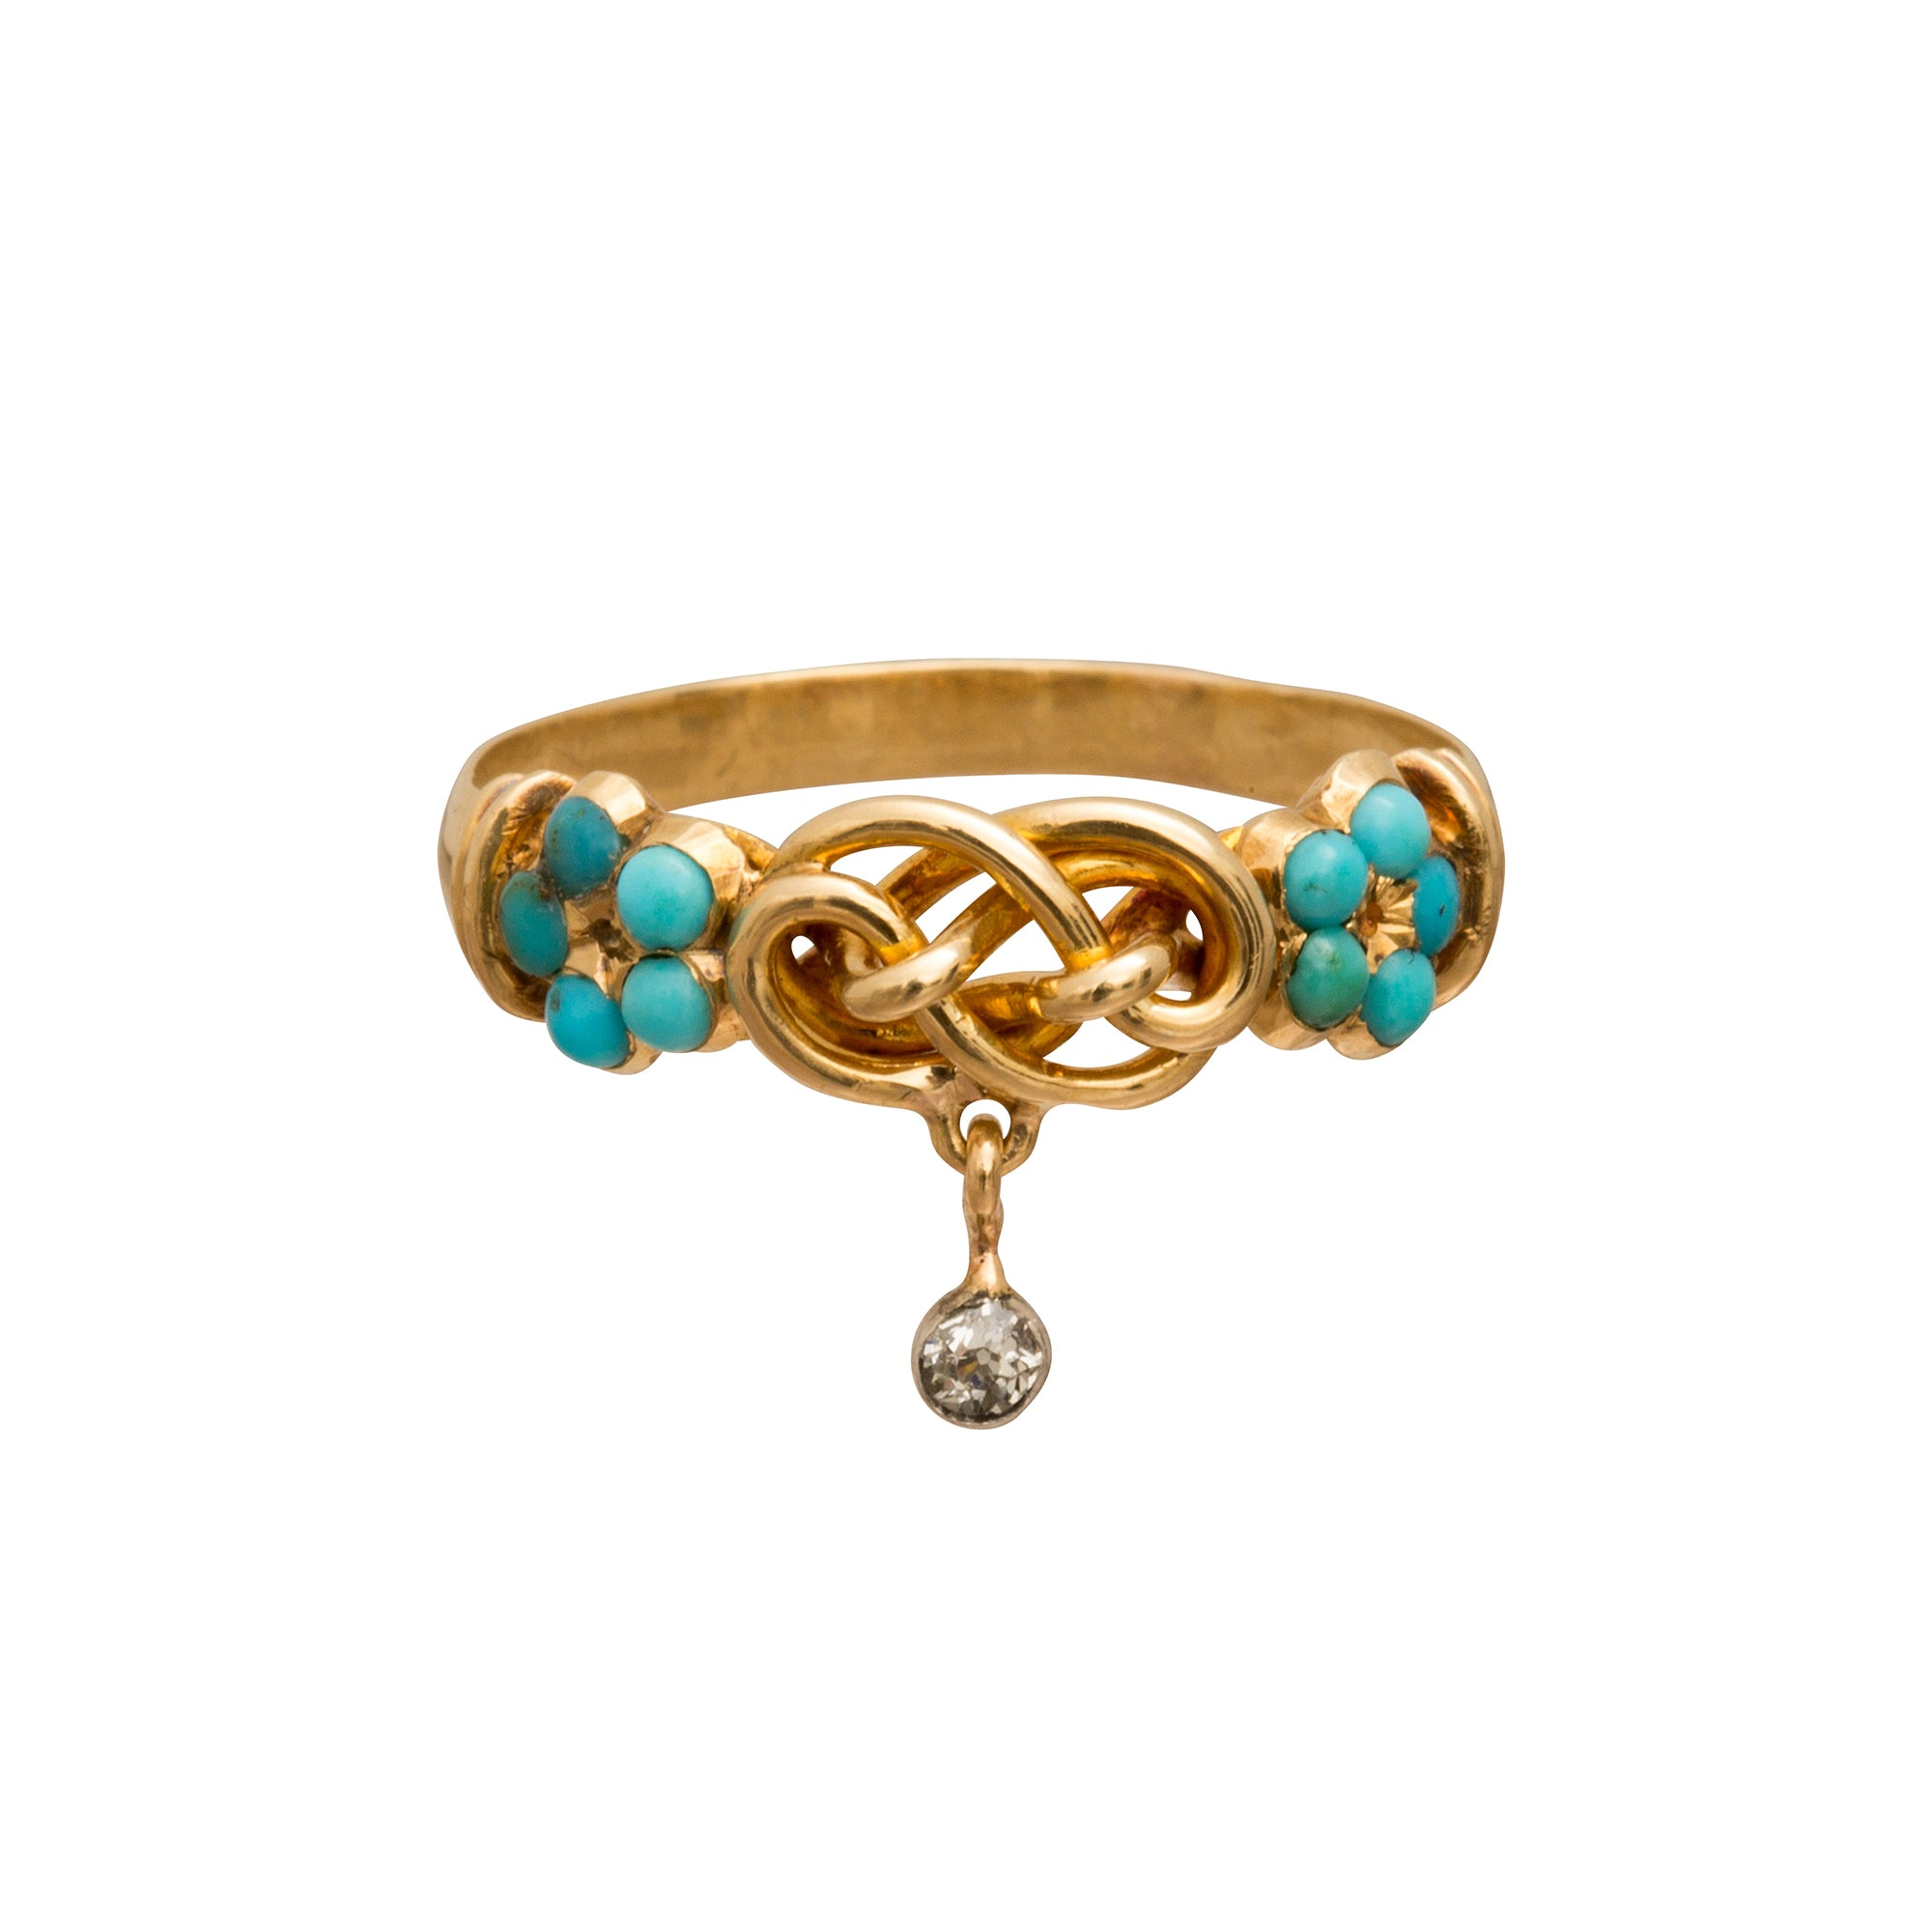 Turquoise & Diamond Ring - Broken English Jewelry